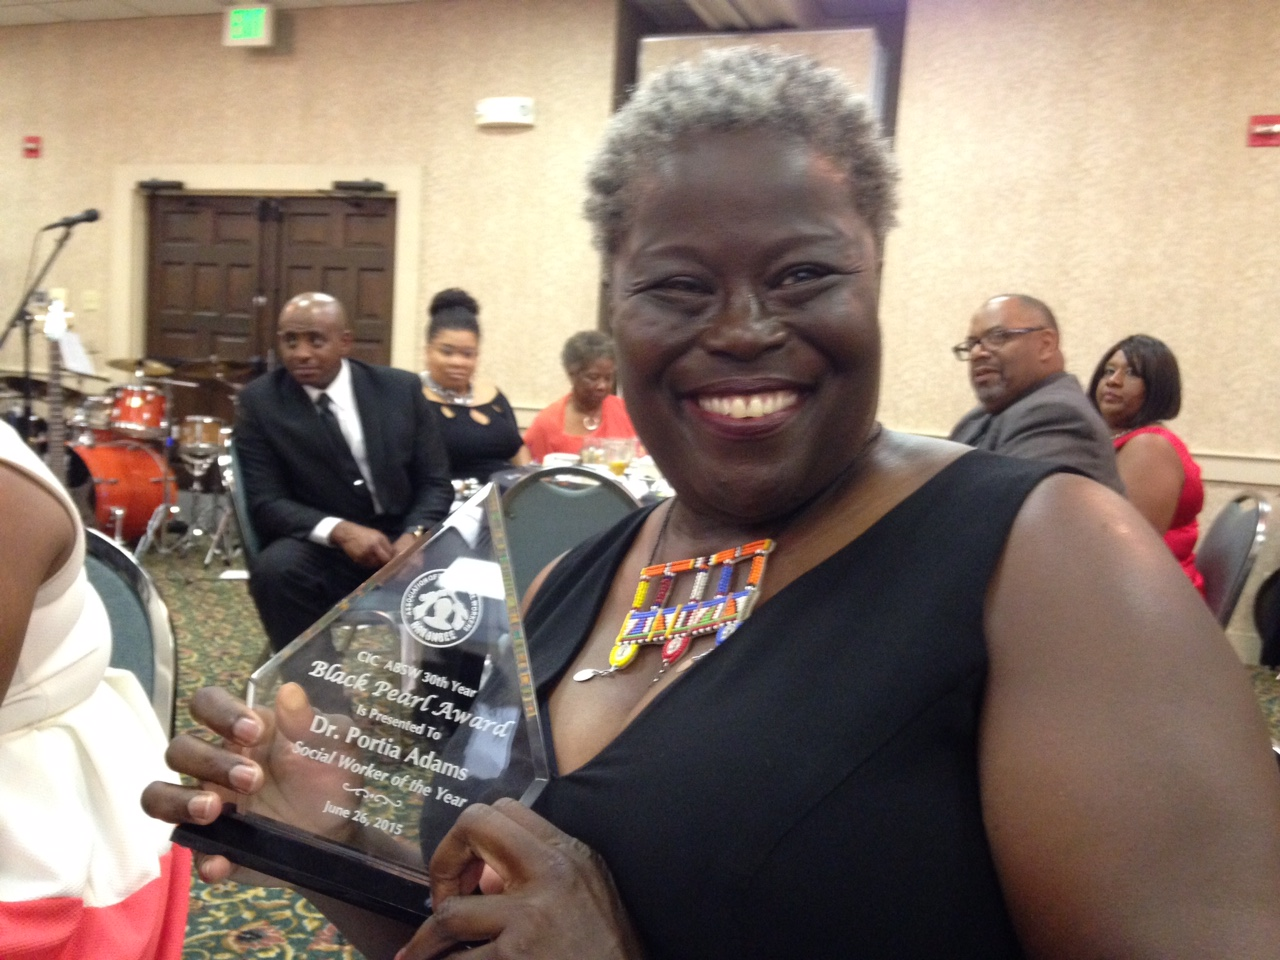 Indiana State professor named Central Indiana's Black Social Worker of the Year